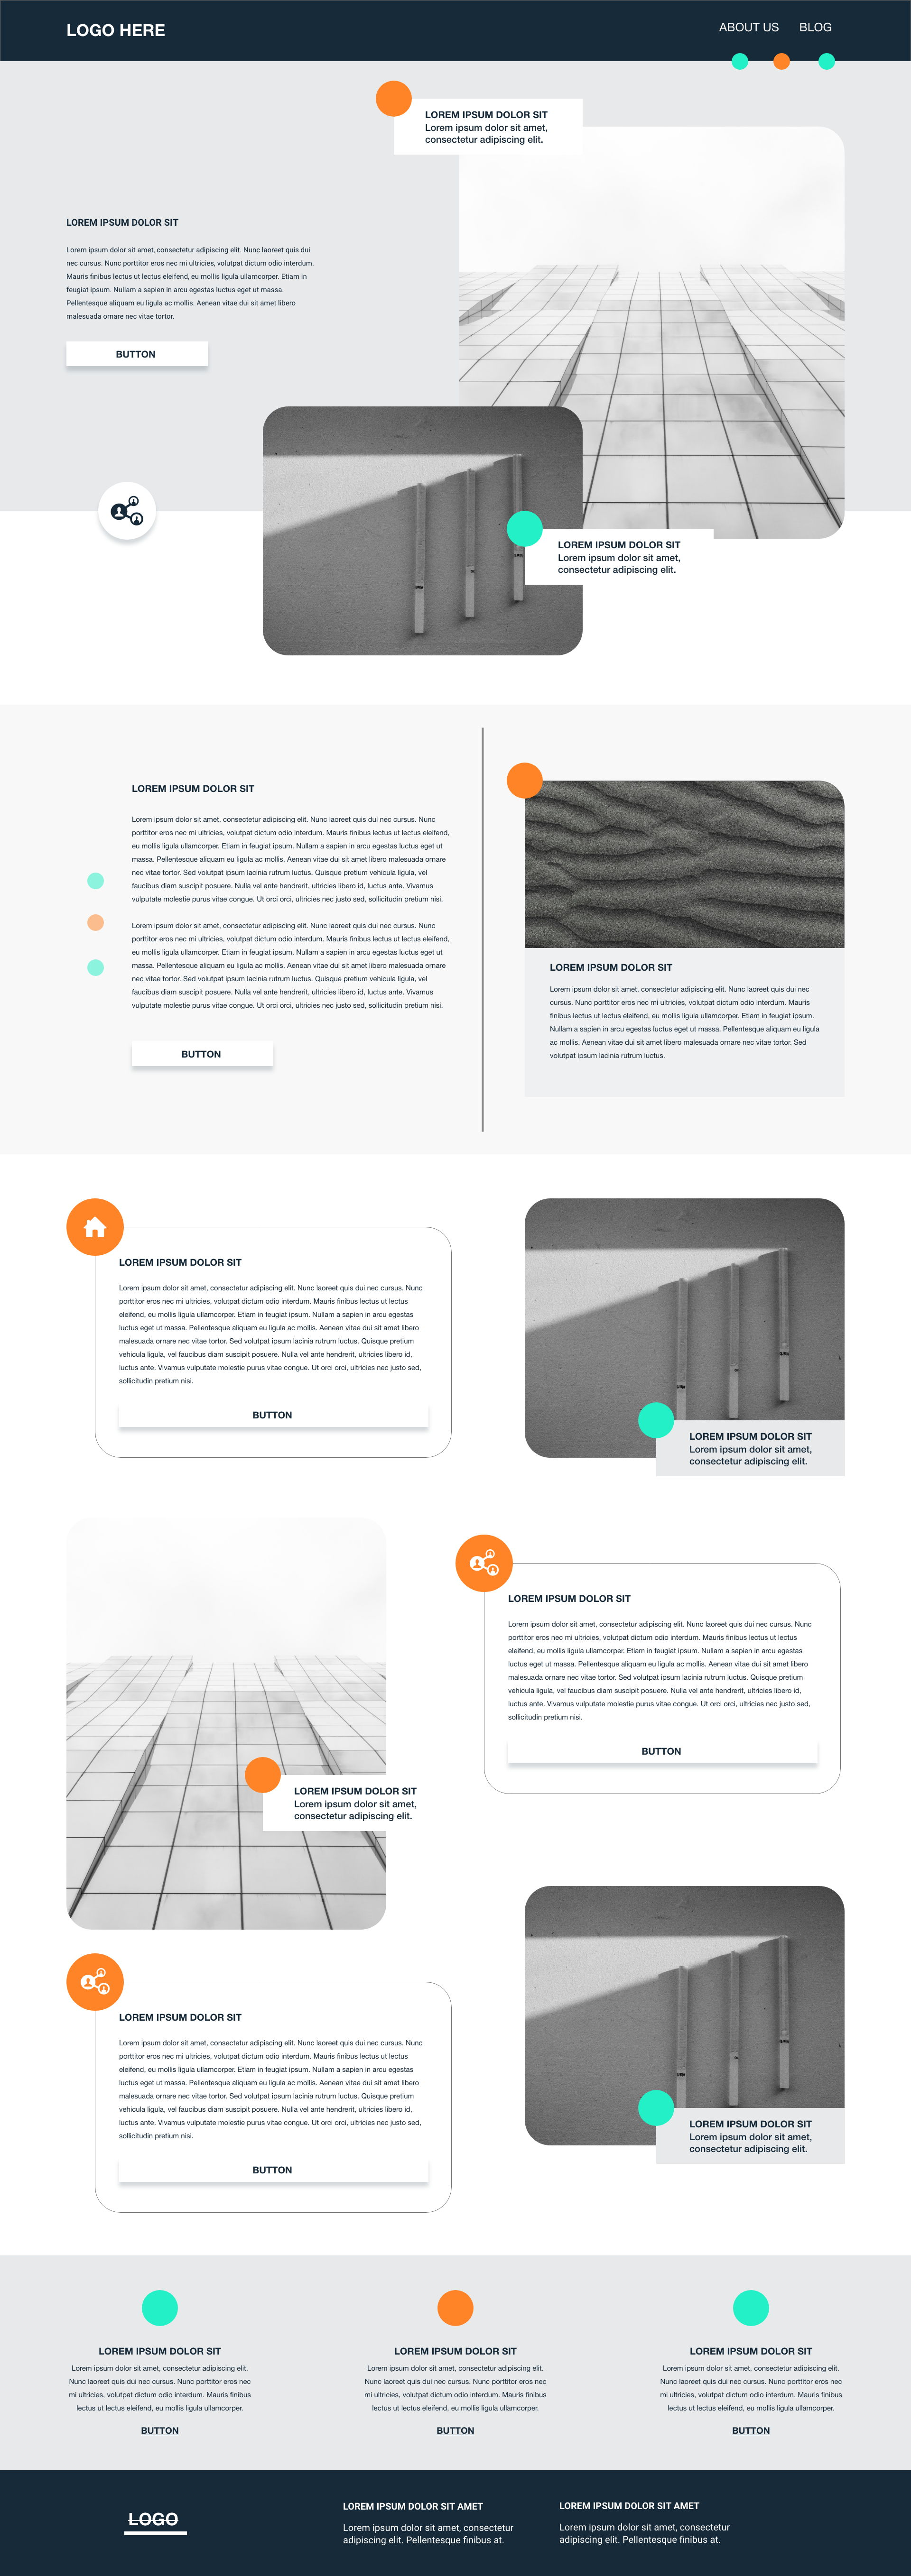 Graphite template's gallery image